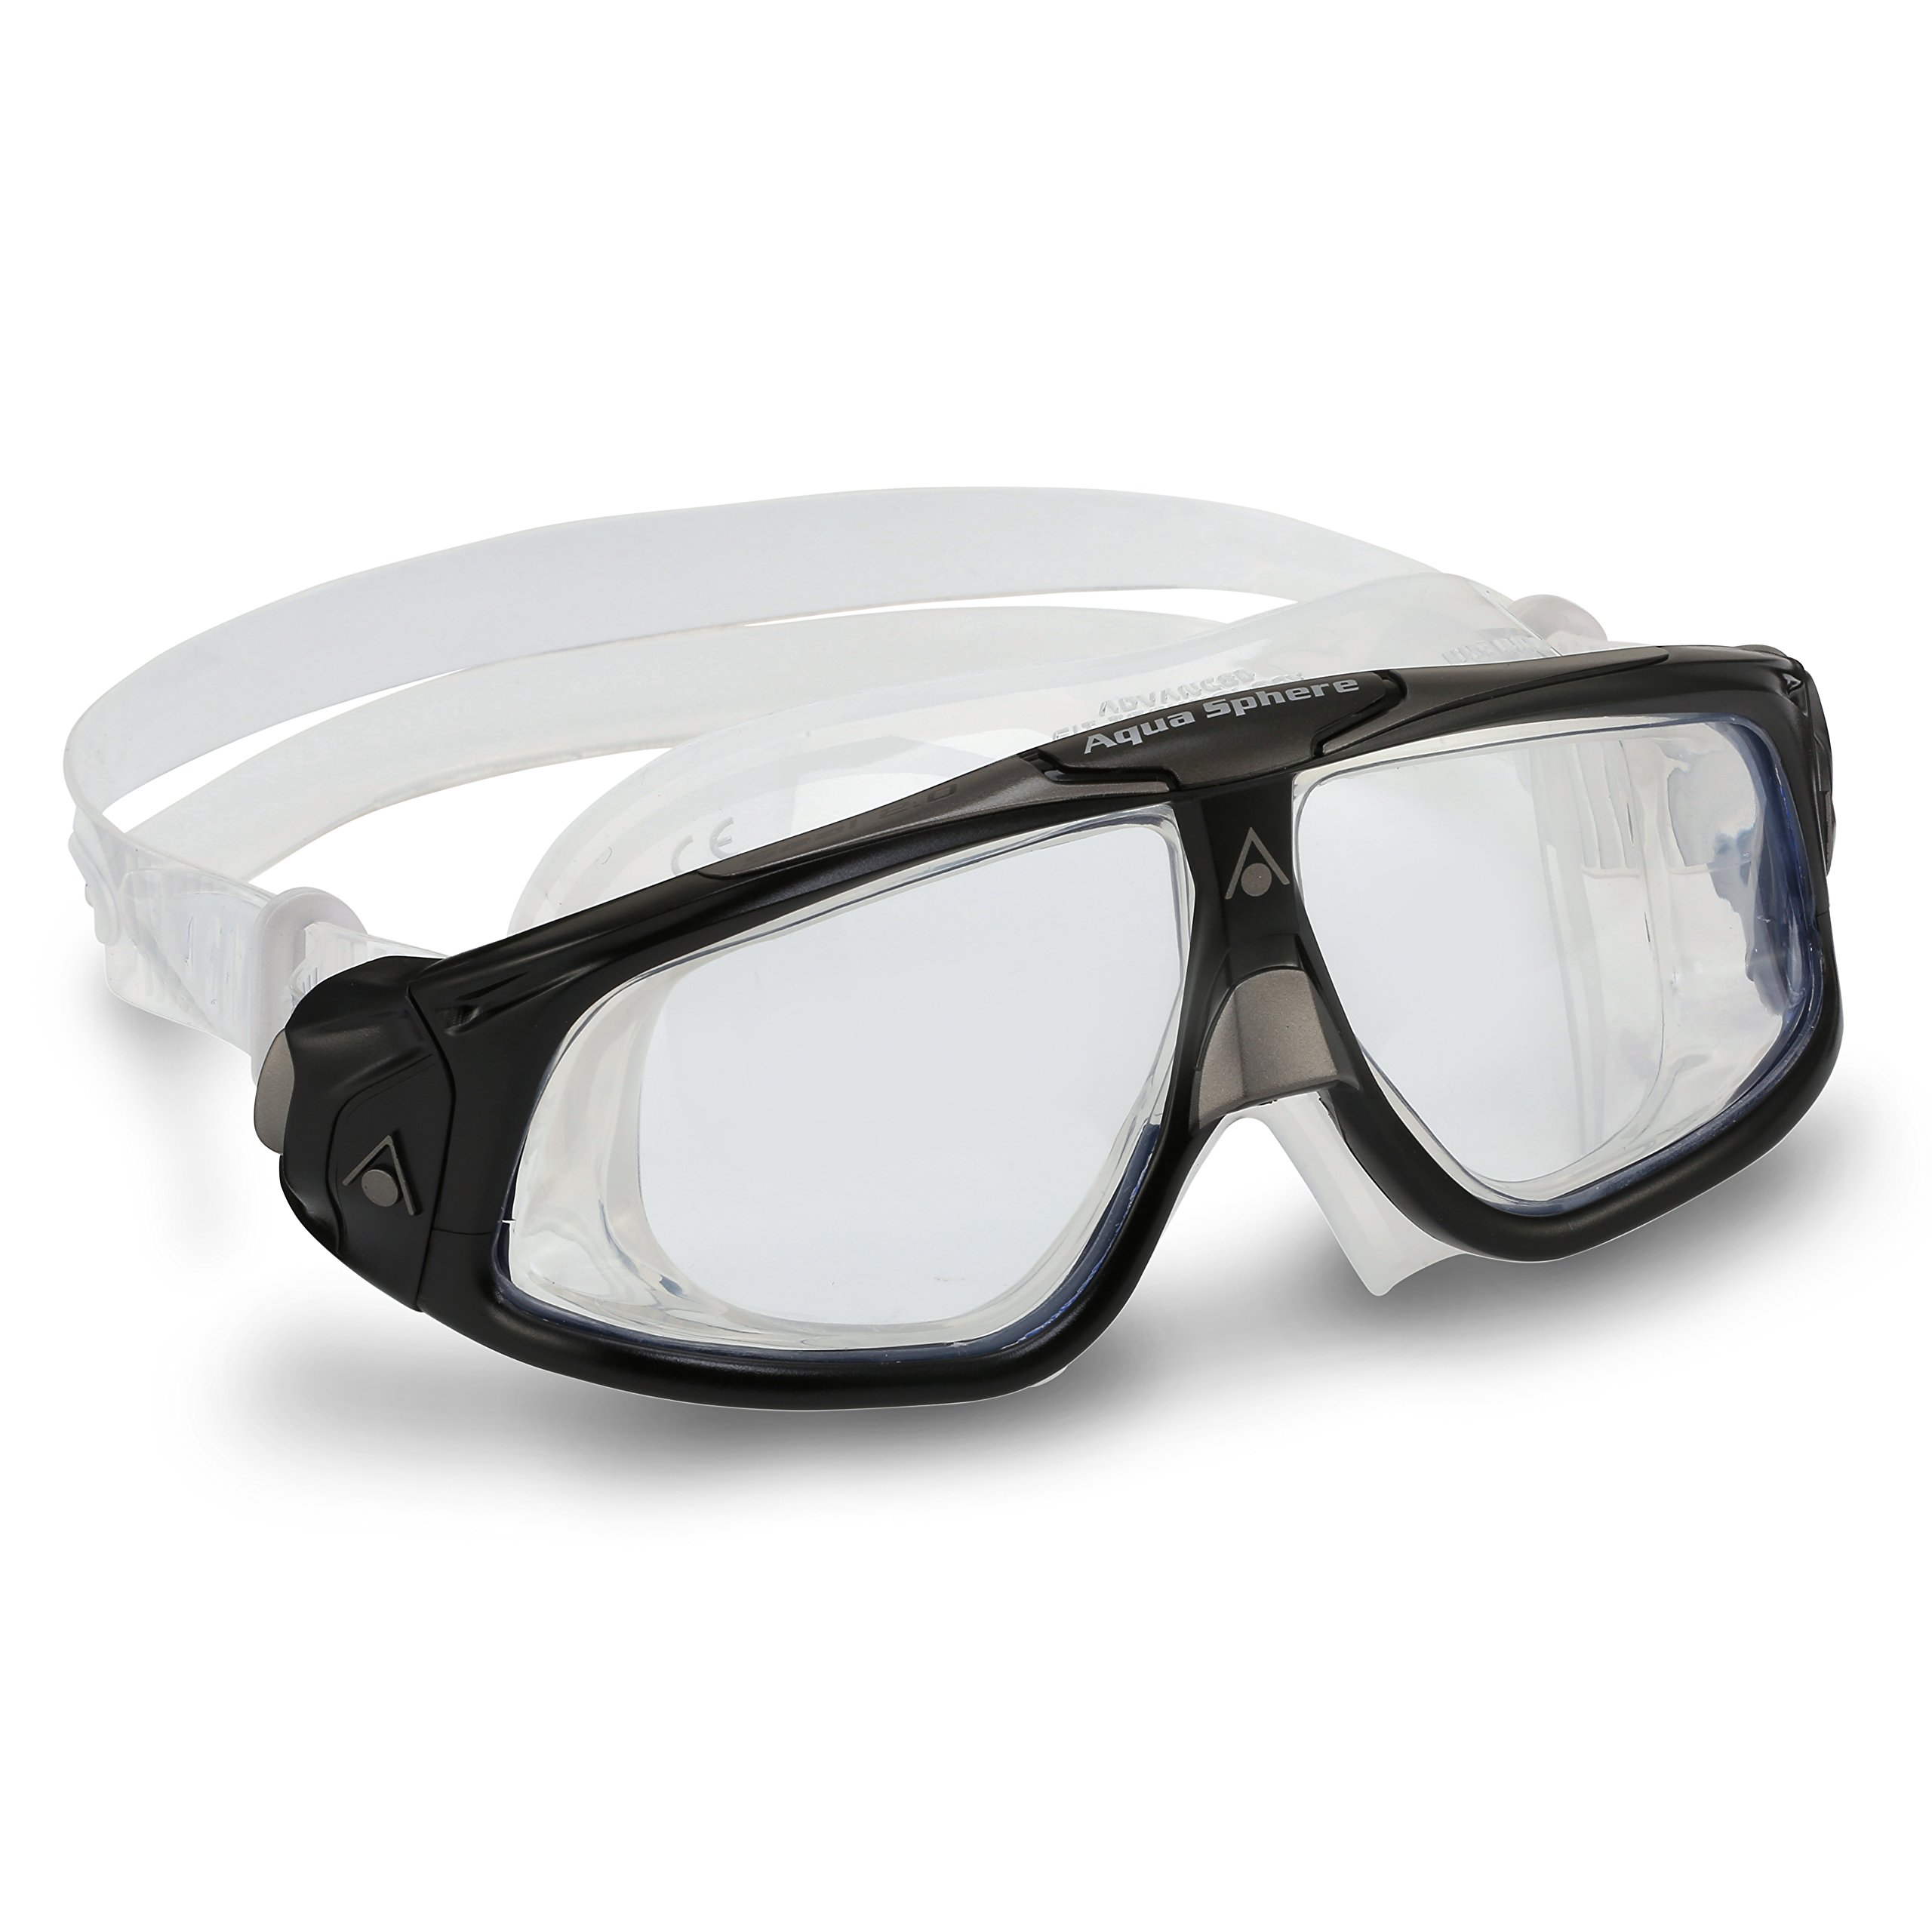 Aqua Lung America Seal Mask with Clear Lens, Silver/Black